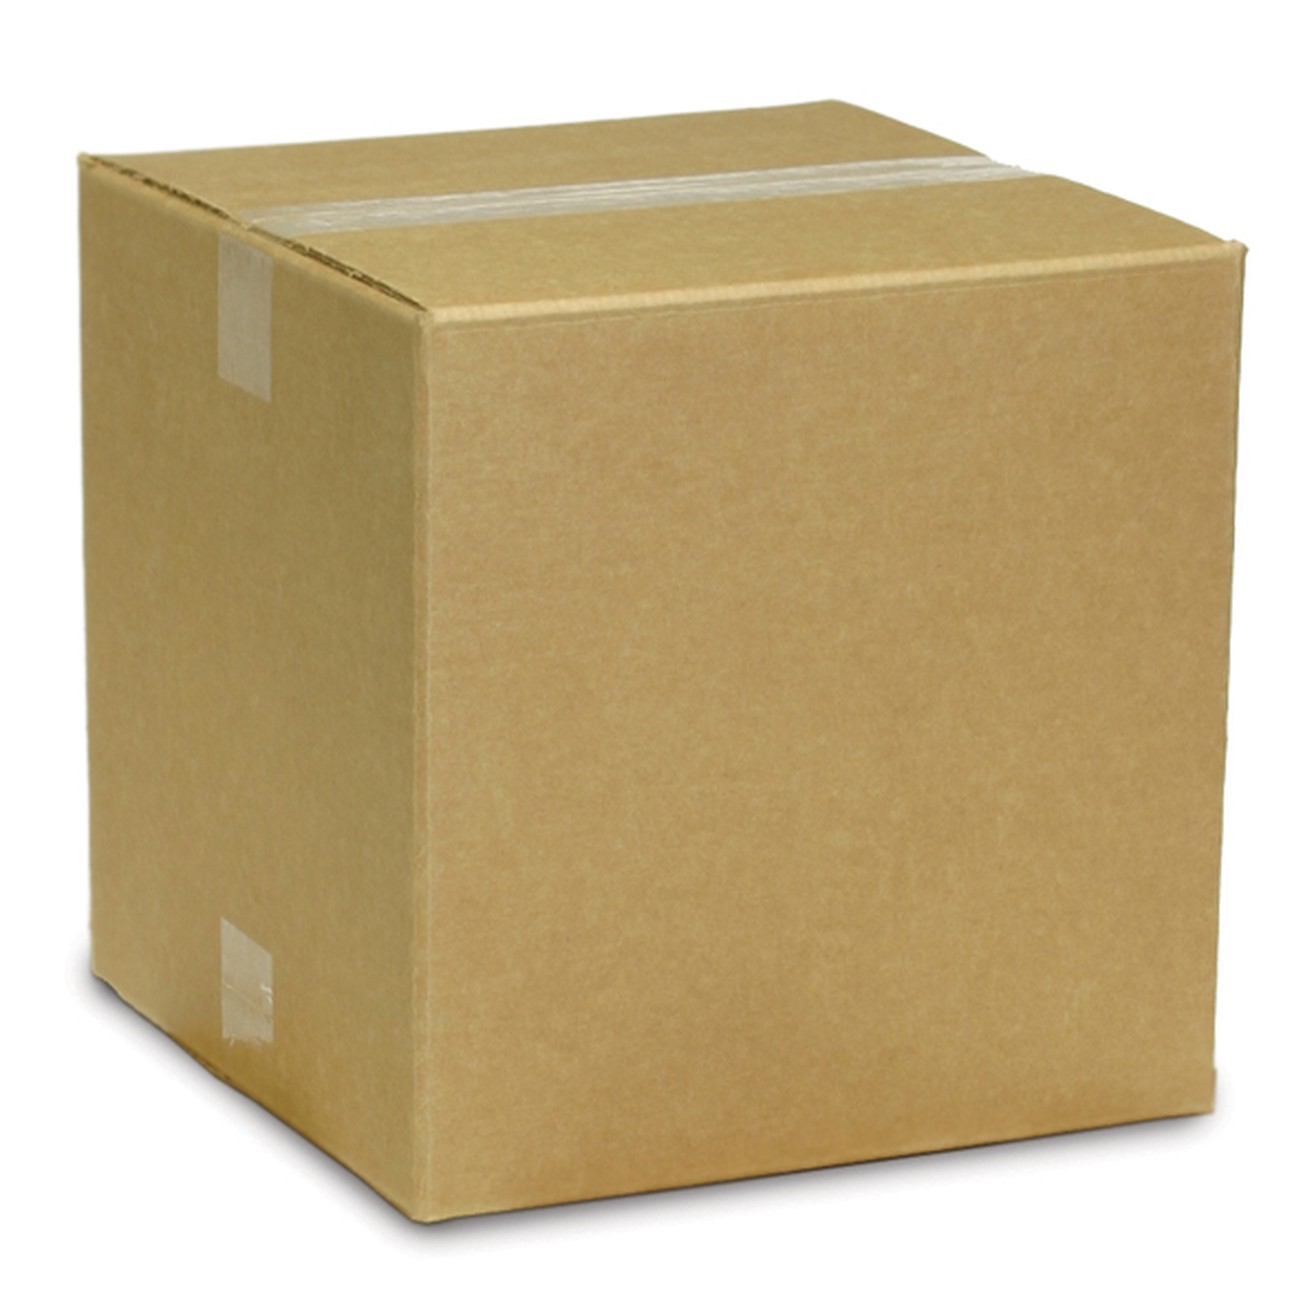 Reserve Storage And Delivery Of Your Items To The Venue